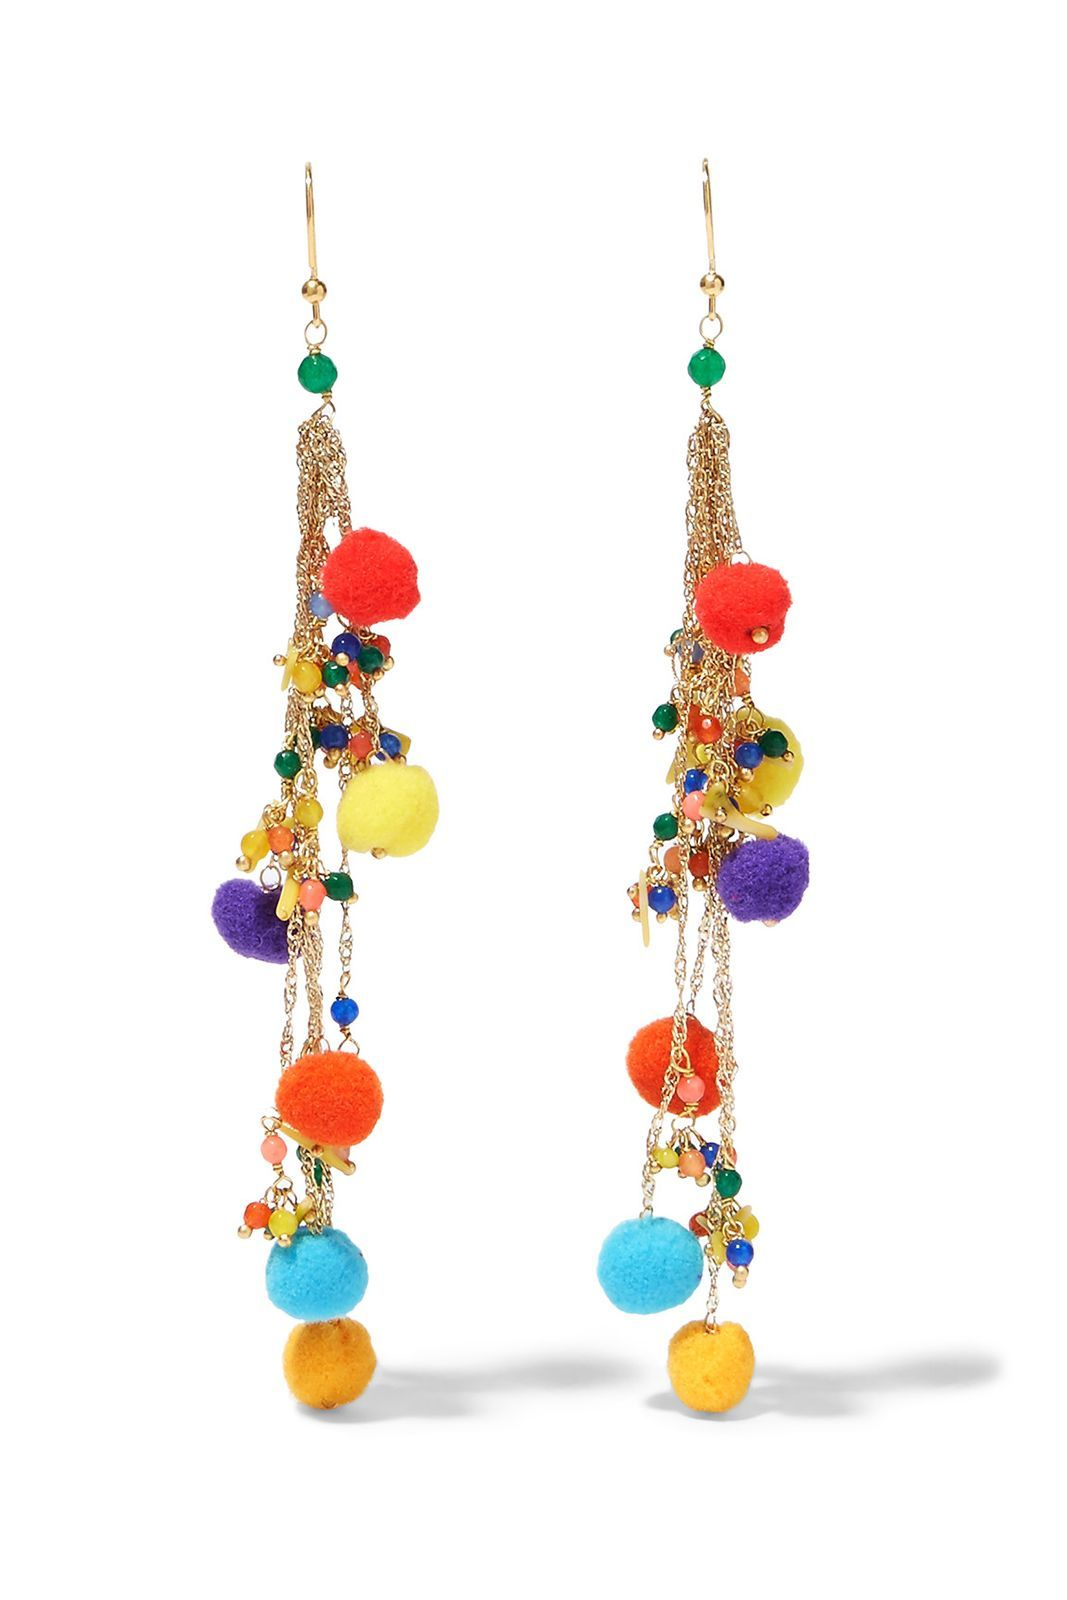 Rosantica Cancun pompom-embellished gold-tone quartz earrings,£145, available at Net-A-Porter...